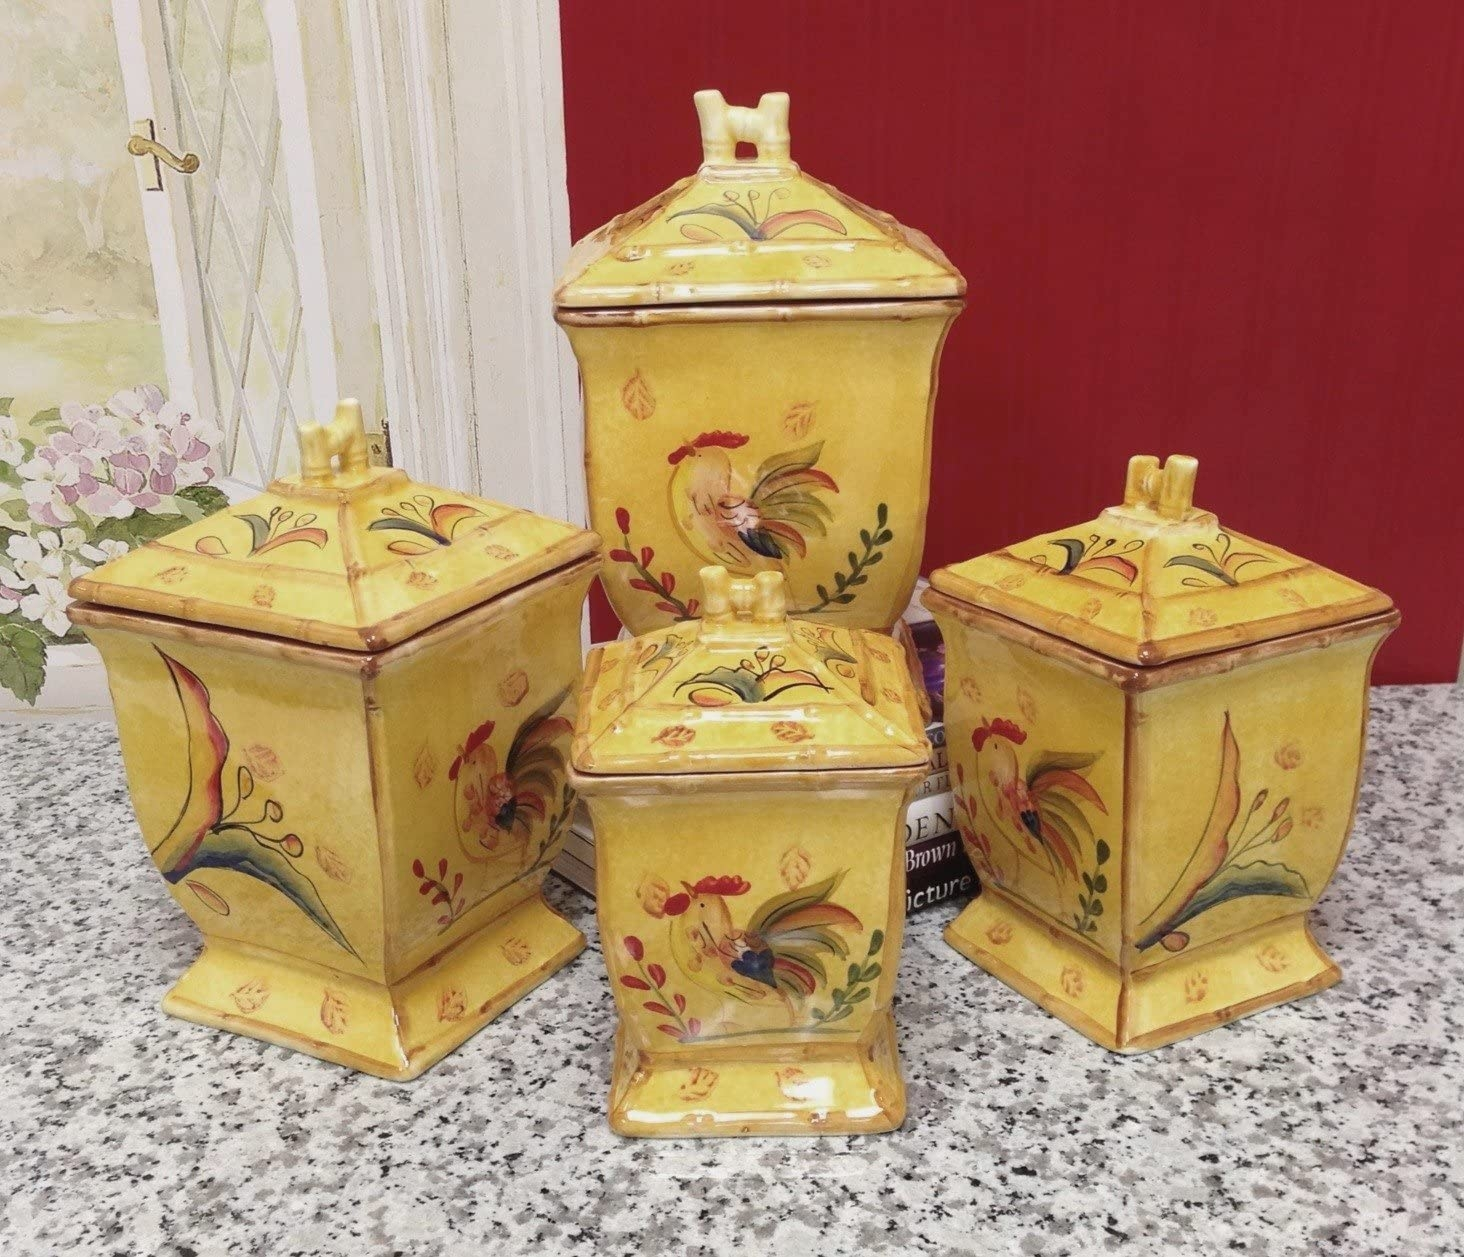 Superior Sunshine Rooster Collection Hand Painted 4 Piece Kitchen Canister Set